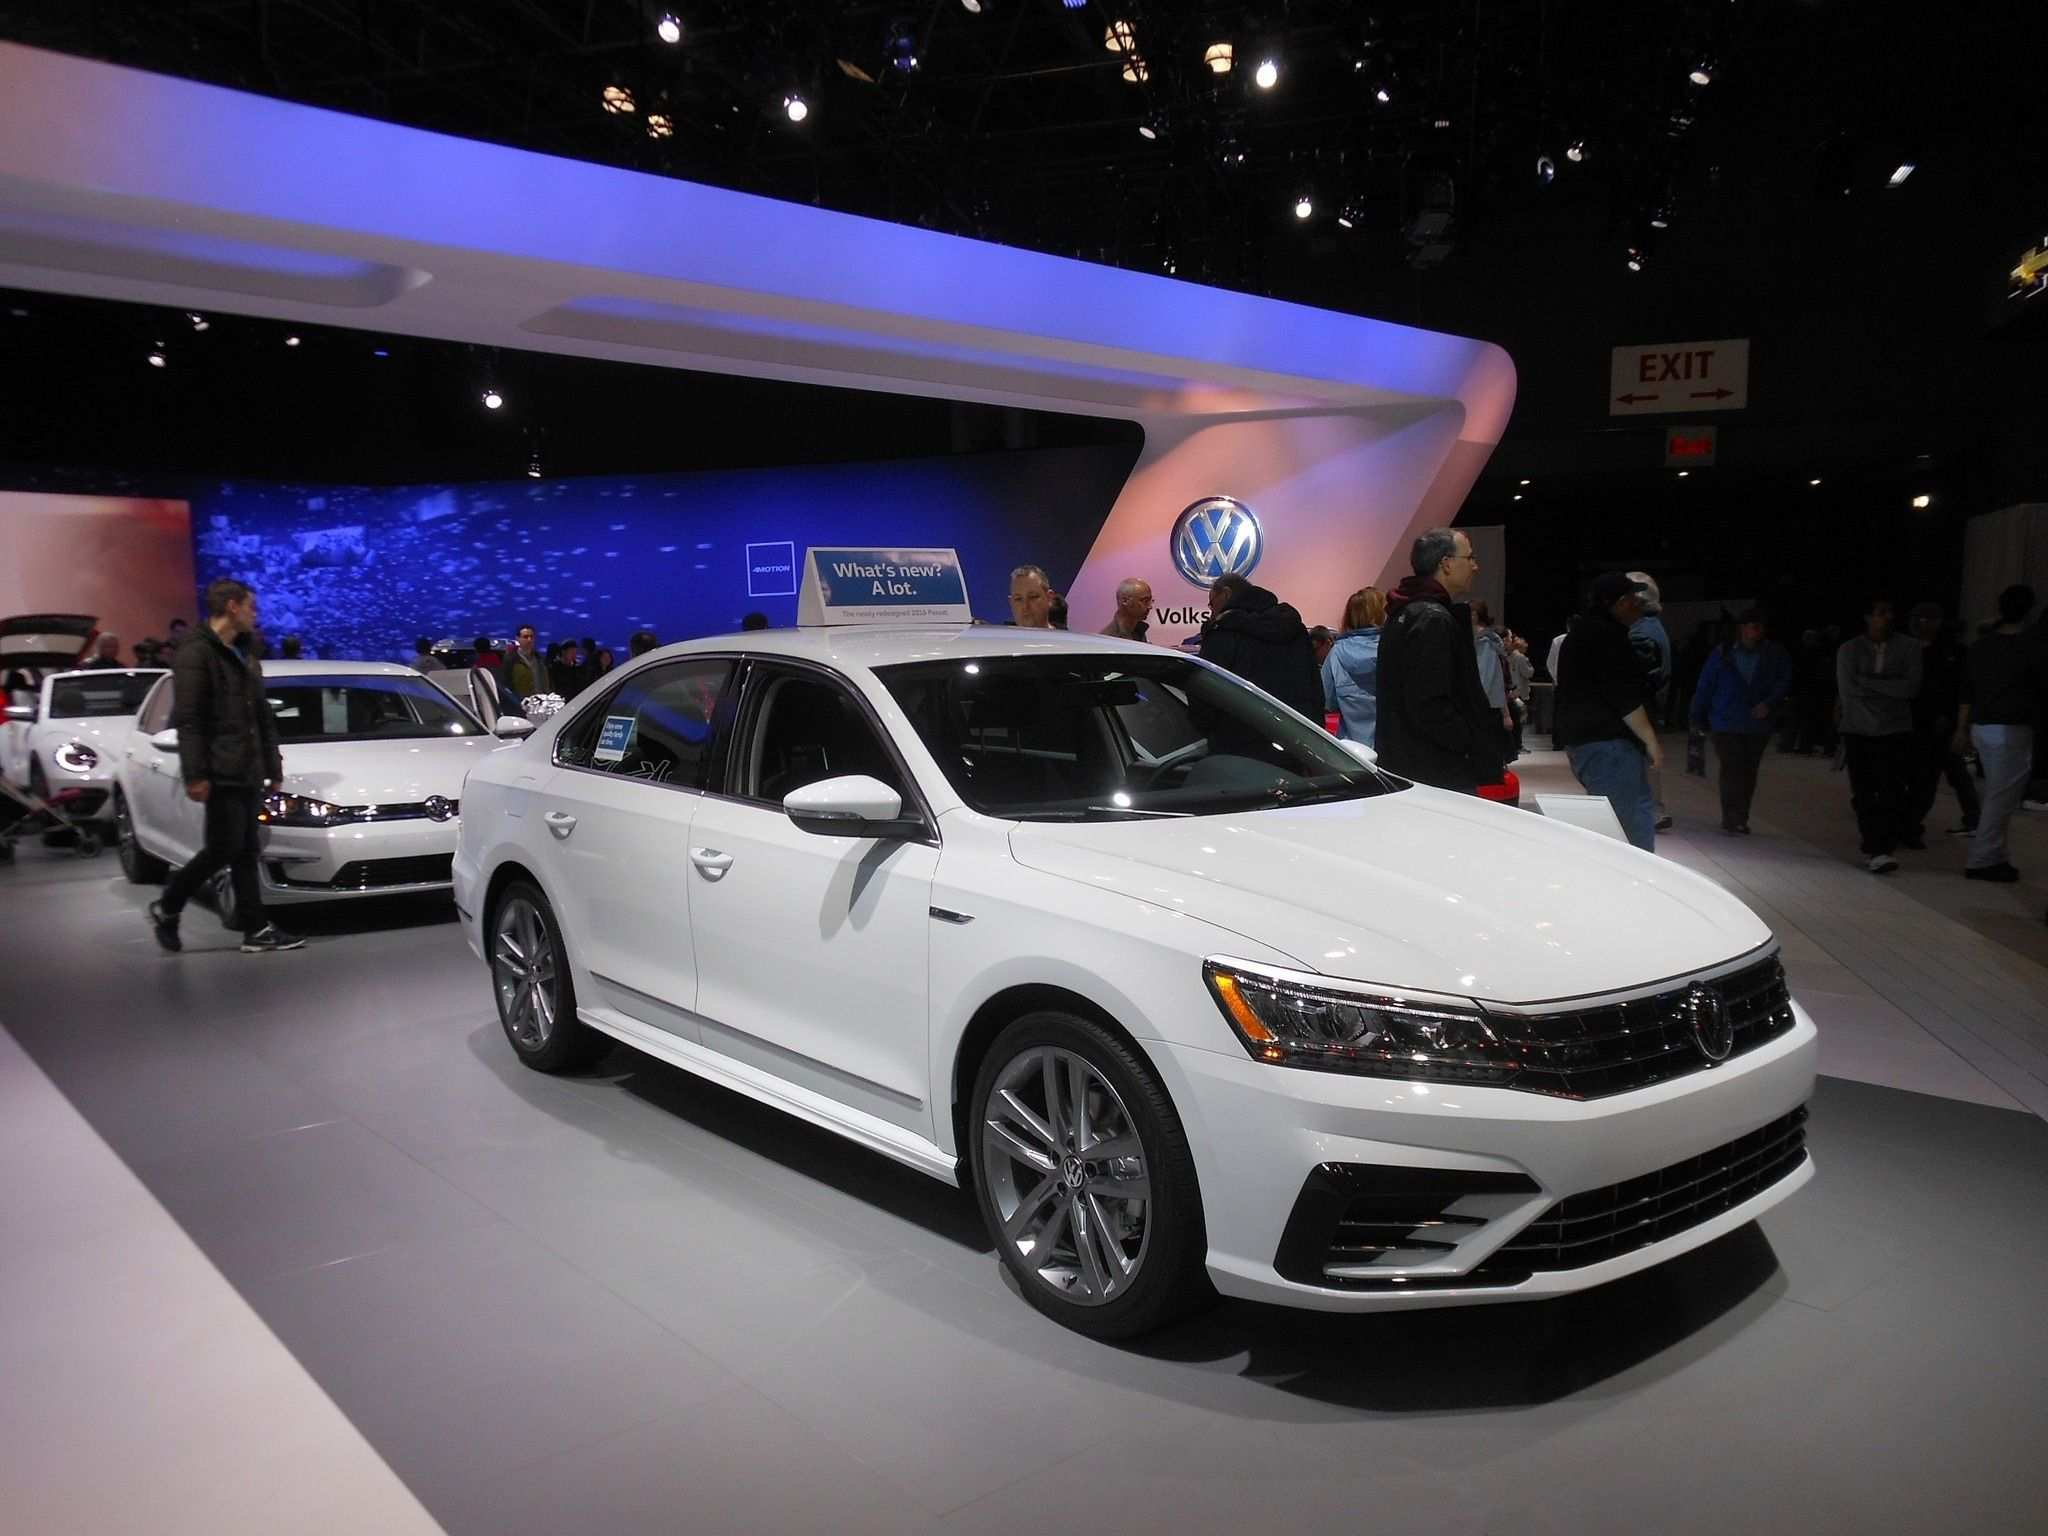 49 New 2019 Vw Jetta Release Date Overview with 2019 Vw Jetta Release Date